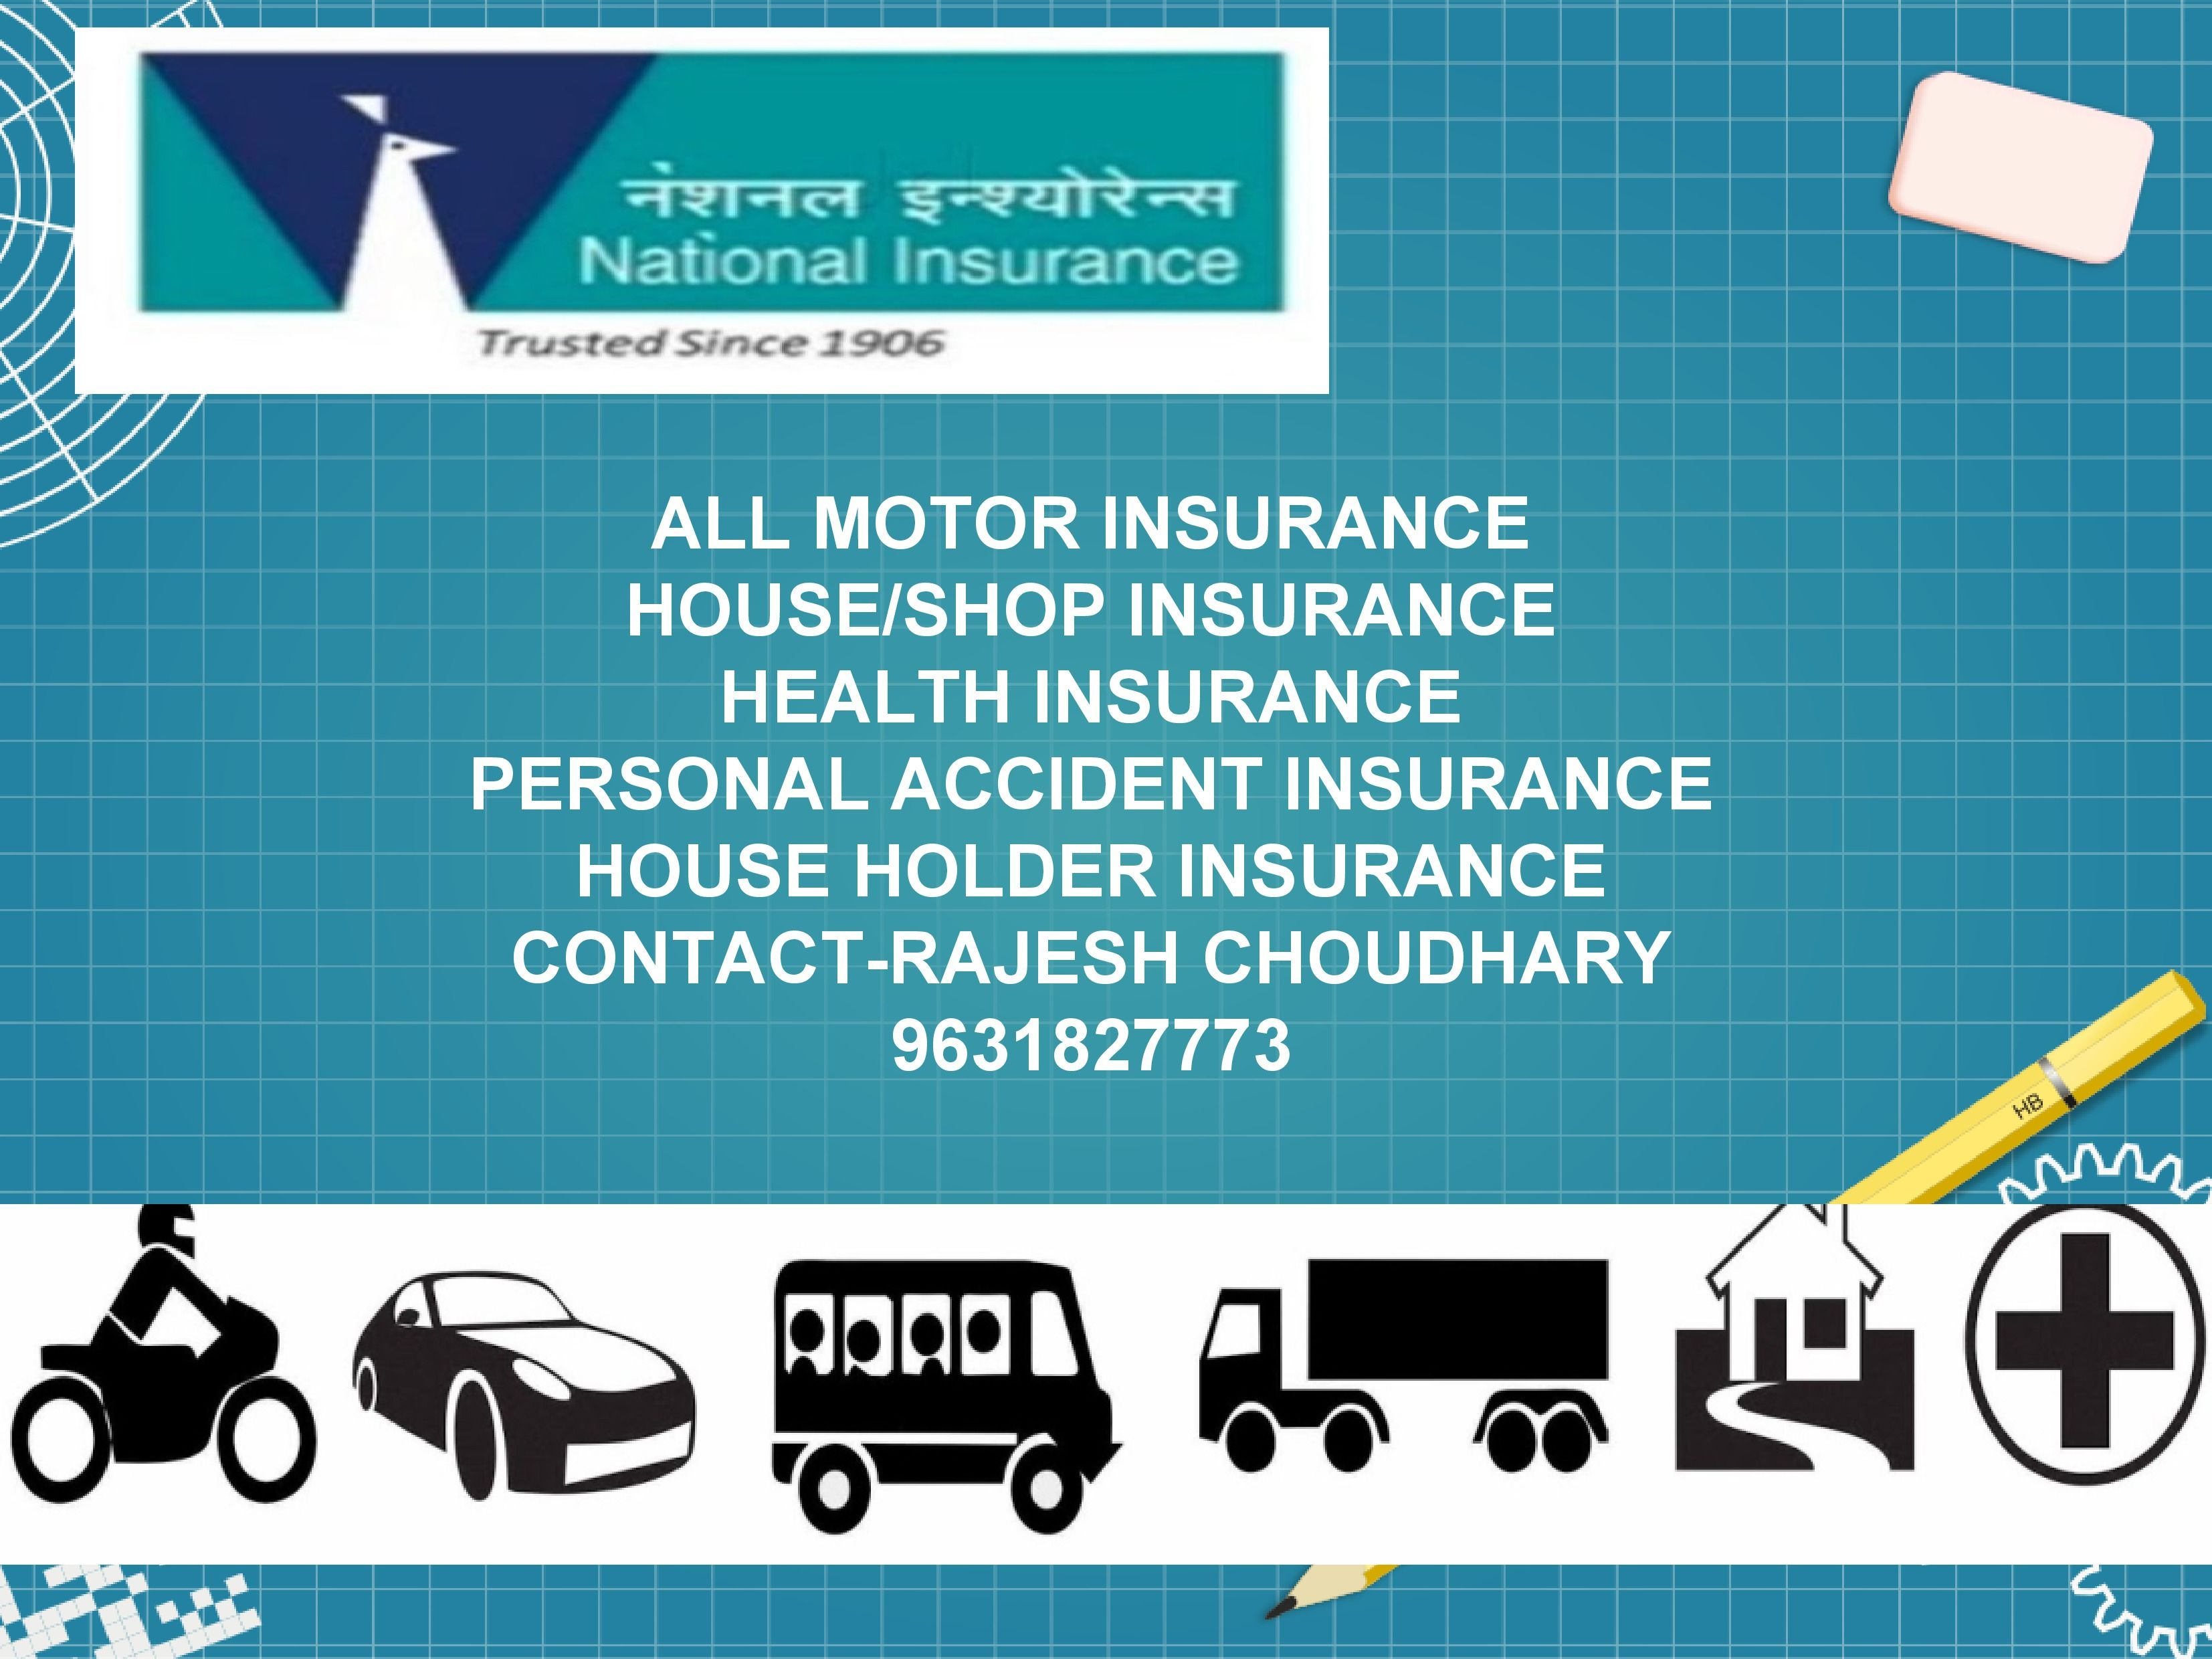 Oldest General Insurance Company Accident Insurance National Insurance Insurance